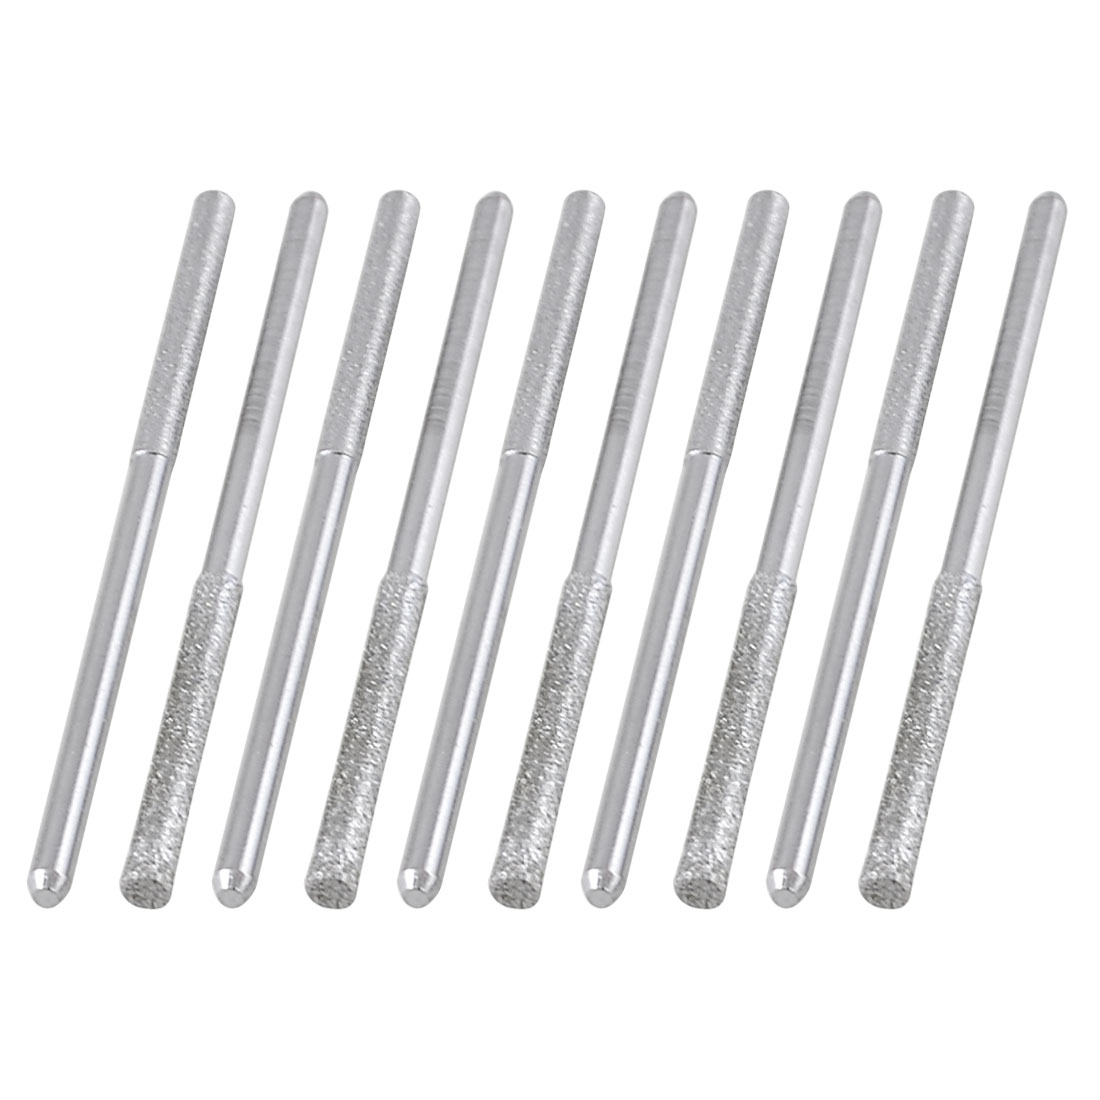 10 Pcs Cylindrical Nose Alloy Shank Polisher Diamond Mounted Points 28mmx3mmx3mm